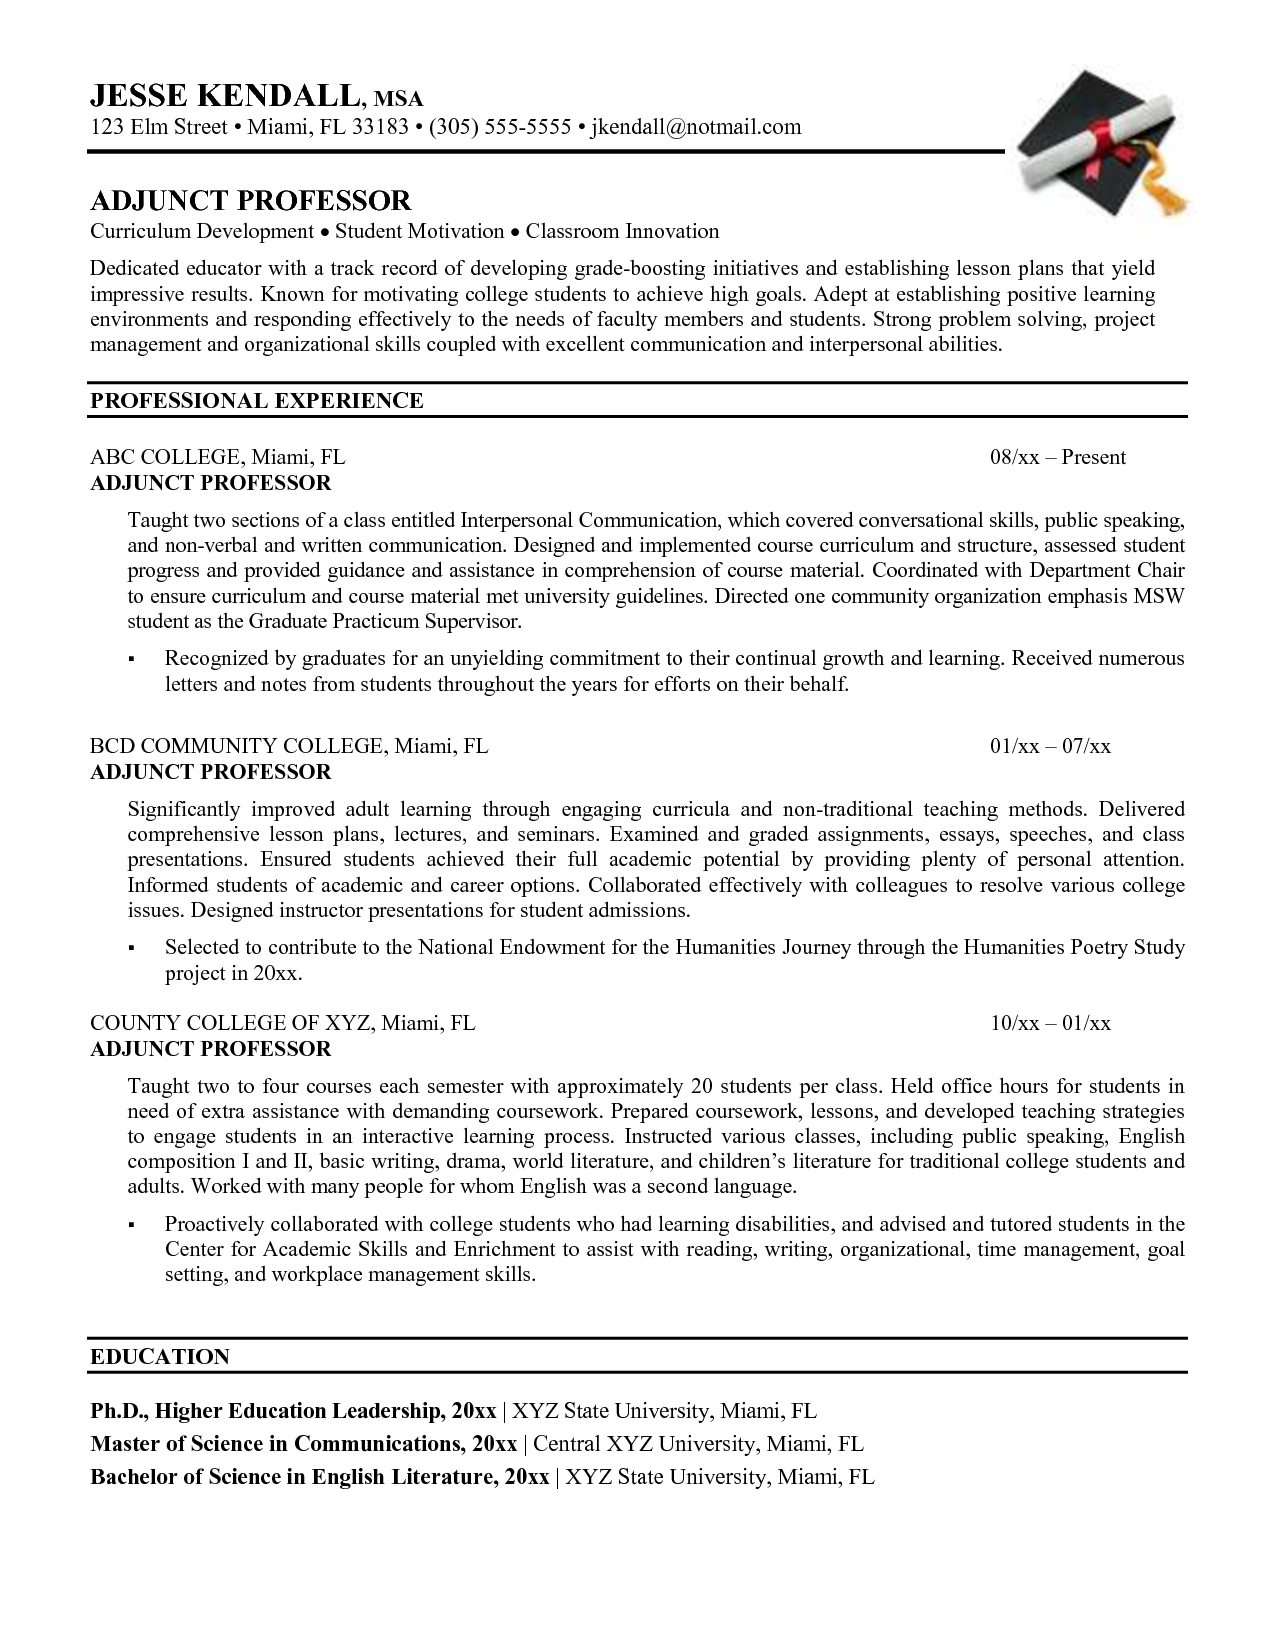 College Student Resume Template Word Sample Resume For Faculty Position Engineering Adjunct Professor